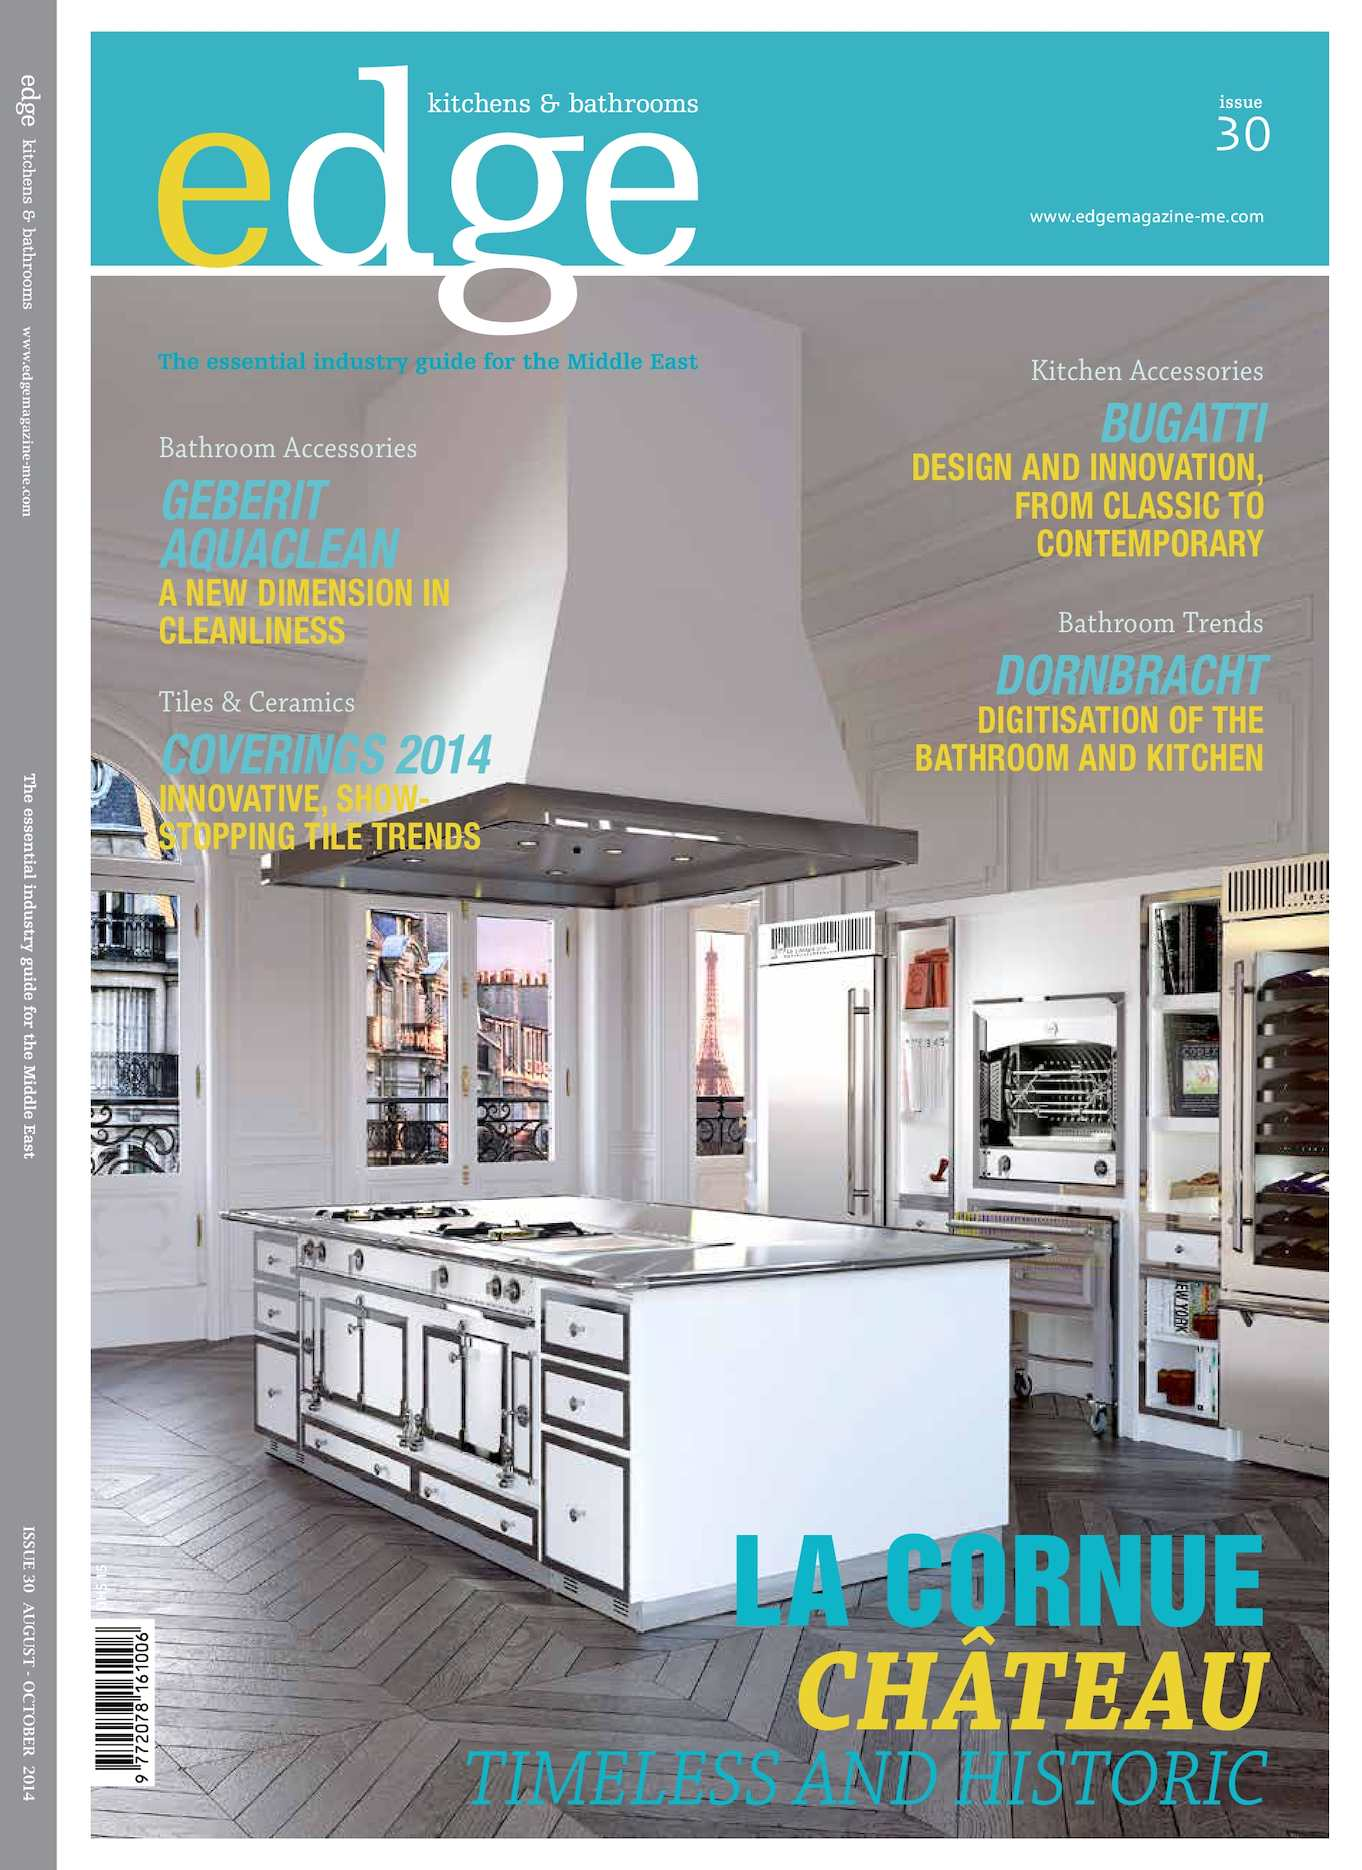 38e666bf357 Calaméo - Edge Gcc August2014 Issue30